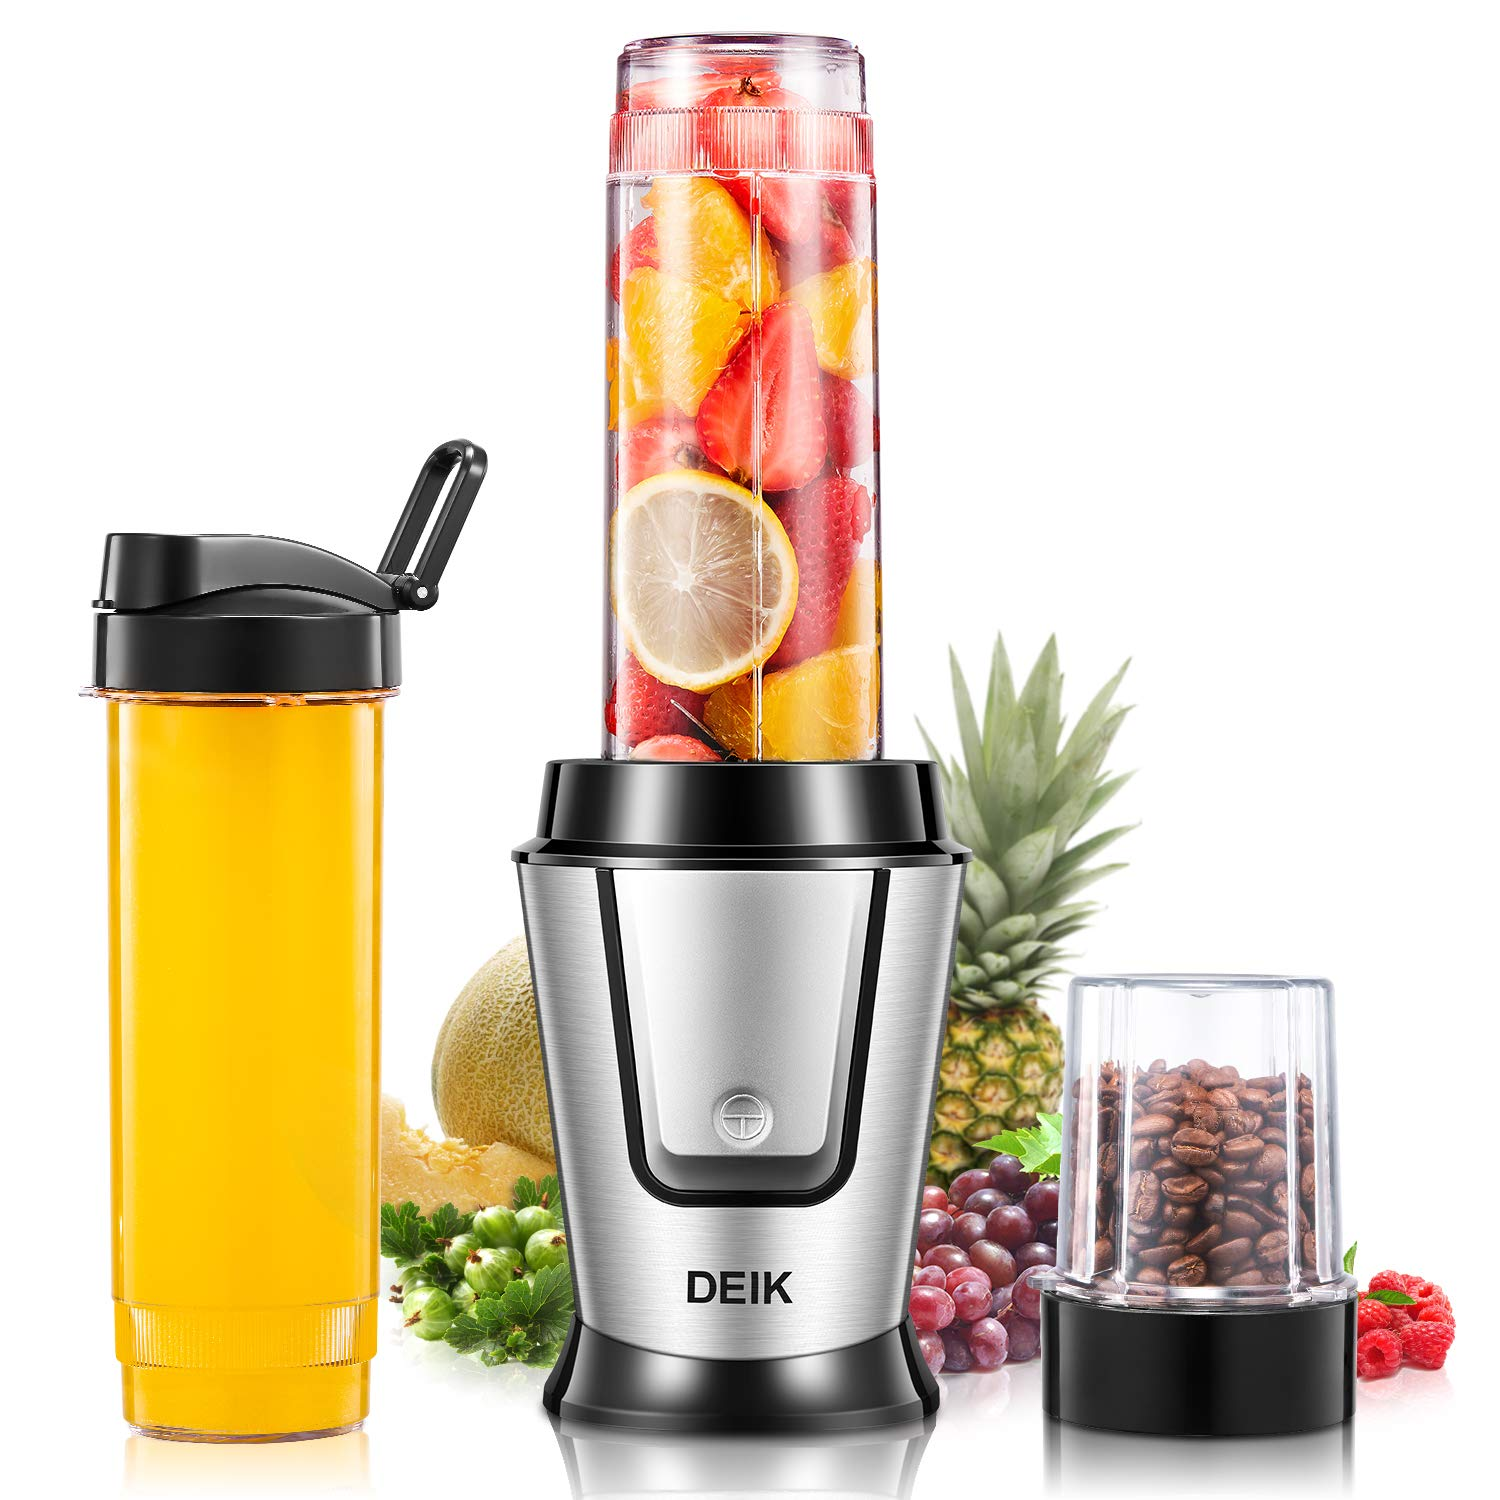 Deik Personal Blender, Smoothie Blender 500 Watt with Travel Lid for Smoothies and Shakes, Coffee Grinder Cup for Coffee Bean, Mixer Blender with 20oz Sport Bottles, BPA Free, Silver by Deik